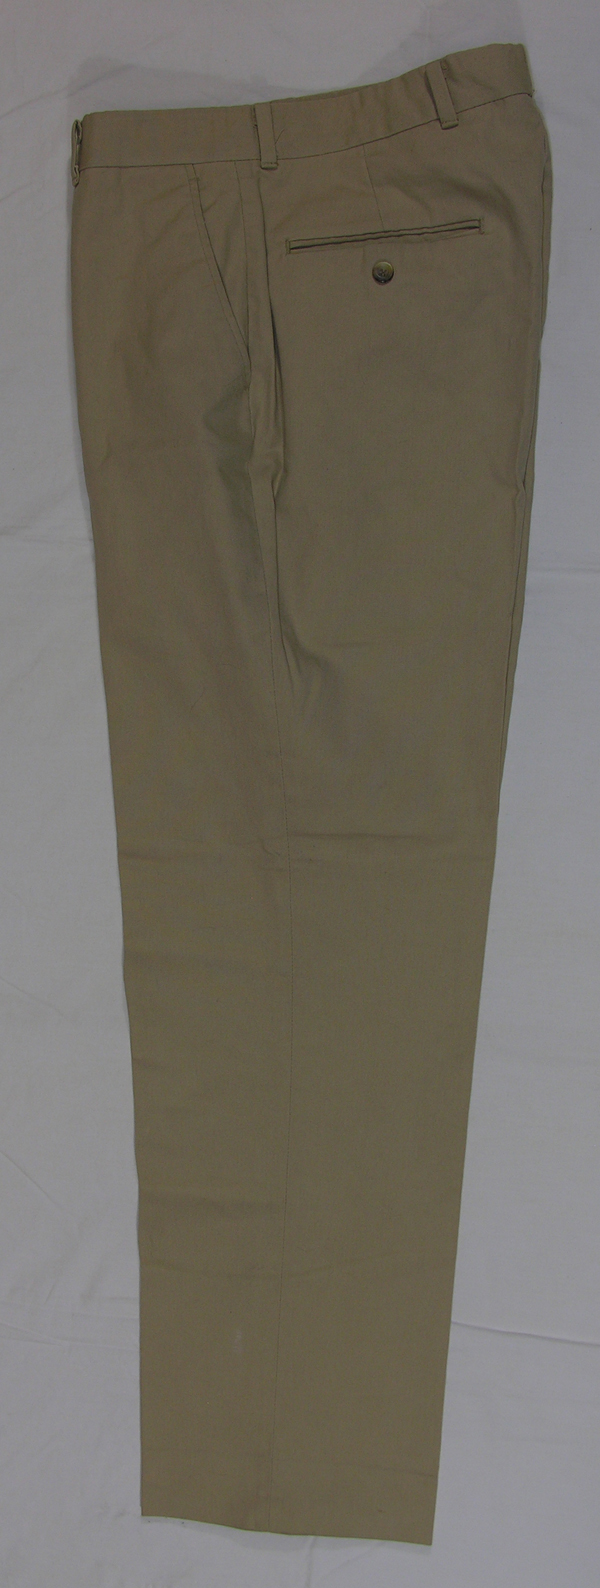 Khaki Dress Trousers